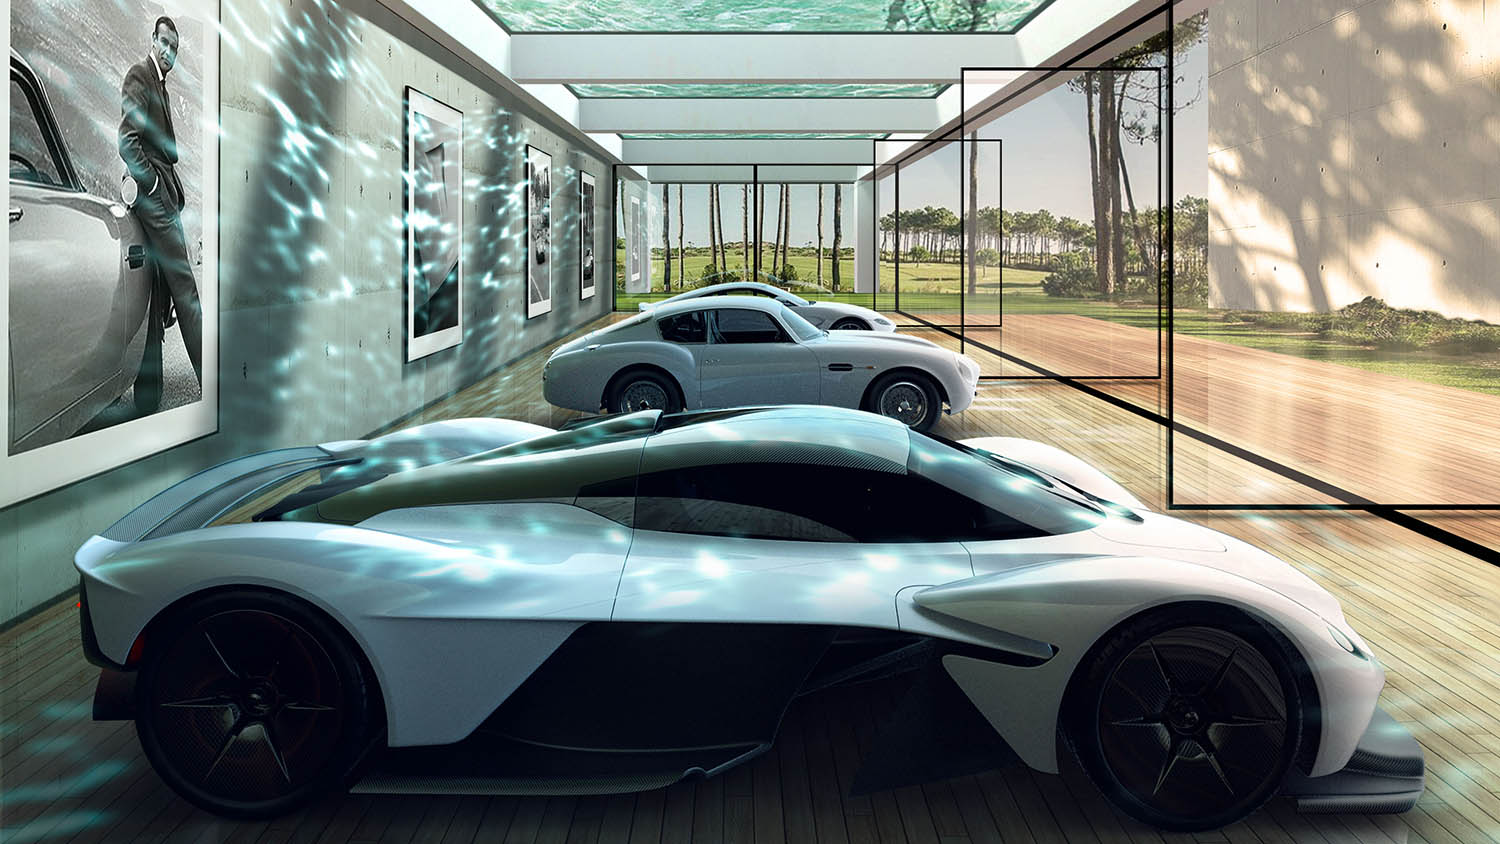 Aston Martin Automotive Galleries and Lairs revealed at Pebble Beach_03.jpg